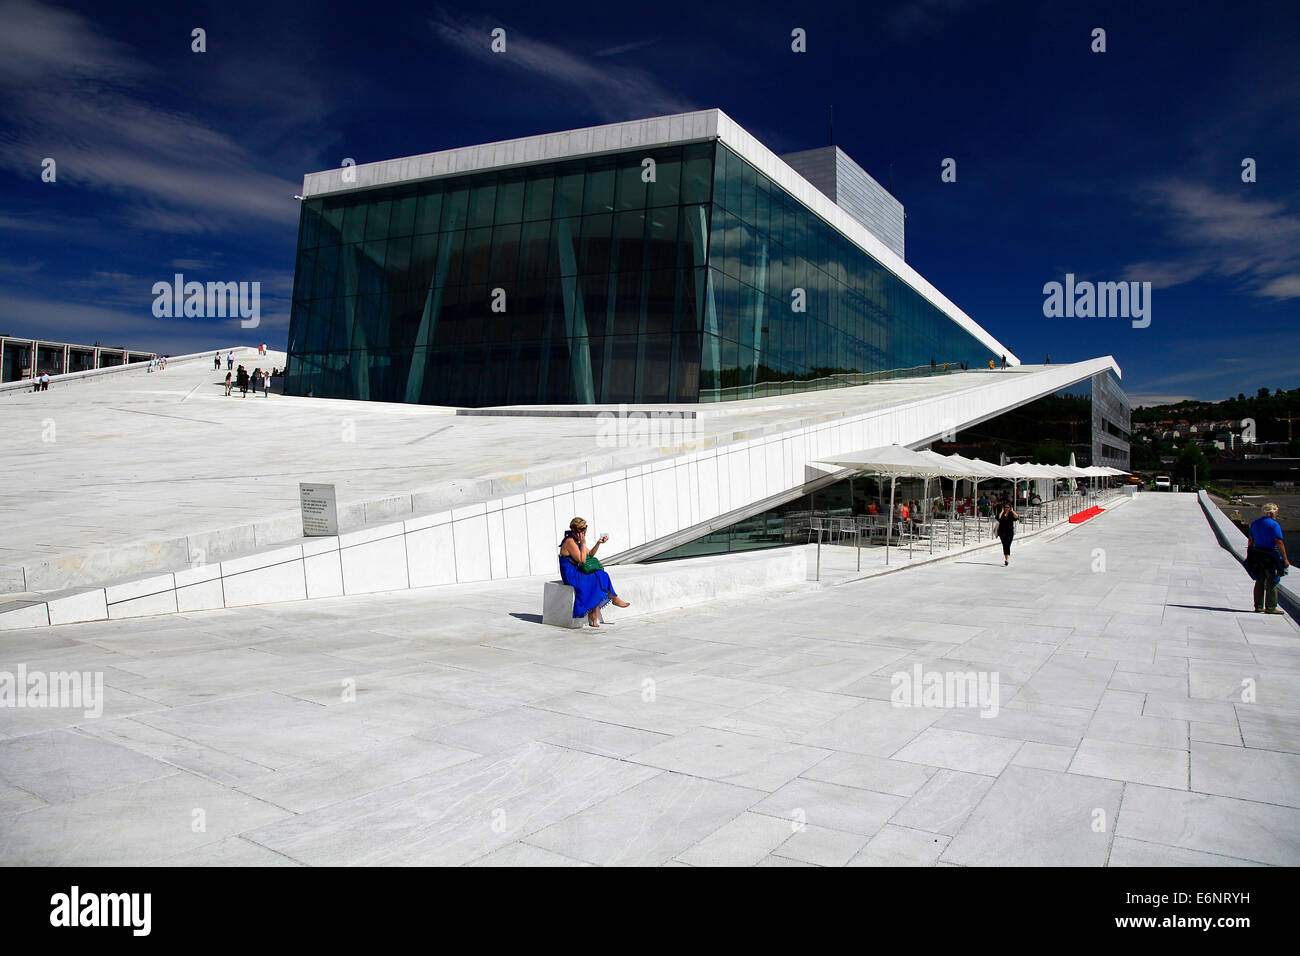 The new Oslo Opera House opened in 2008 and it is the largest Norwegian culture project. The building is modeled - Stock Image